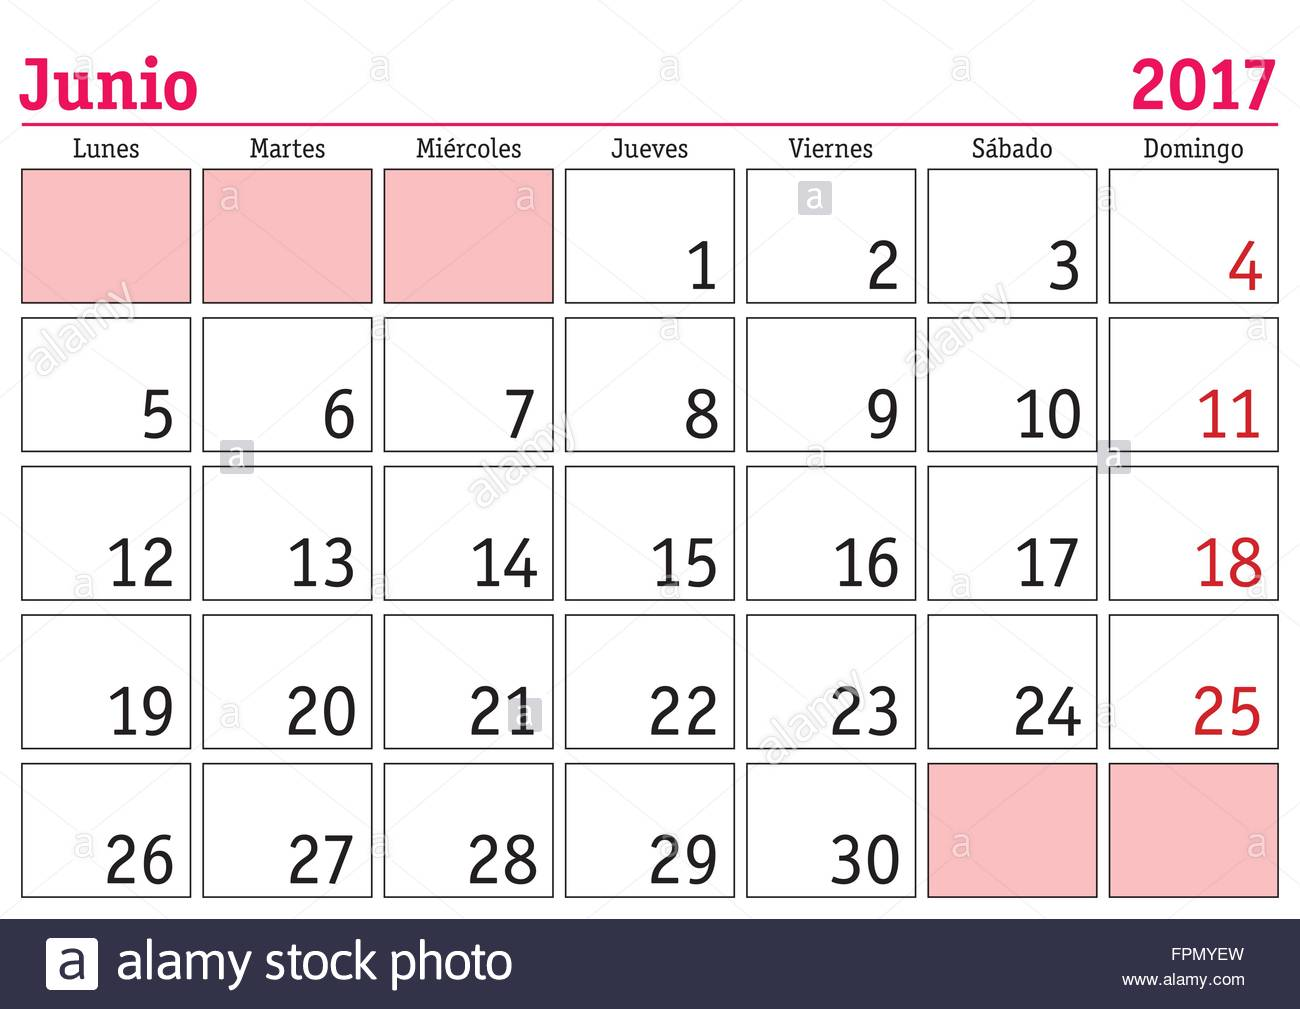 June Calendar In Spanish : June month in a year wall calendar spanish junio